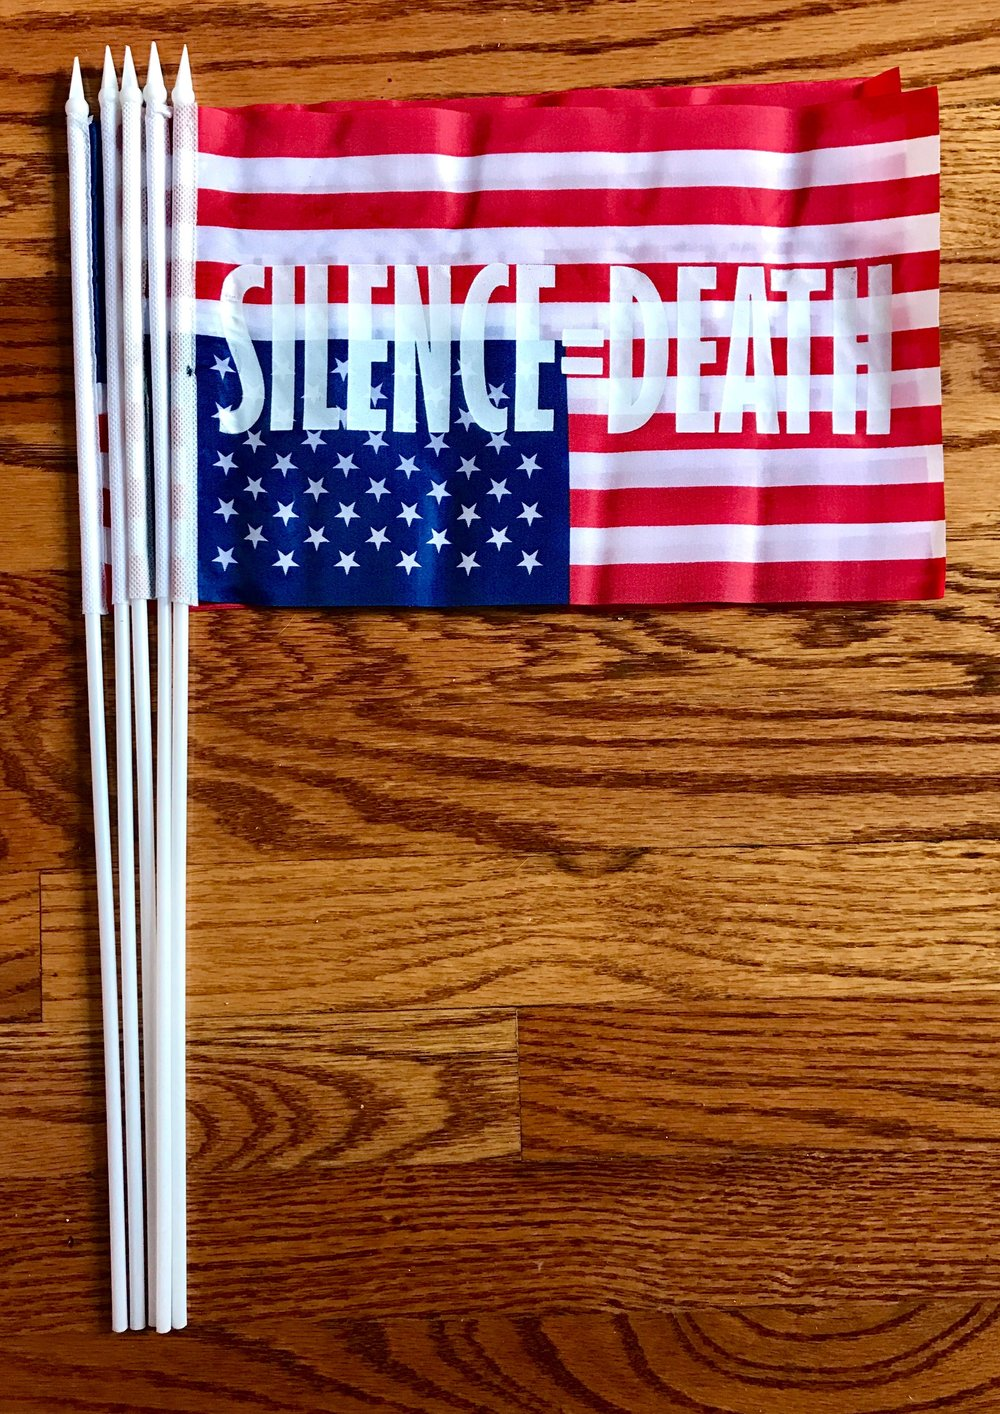 "J. Morrison, 30 years: 1987-2017 (Silence = Death Project), 2017, hand-screenprint on polyester American flag,11.5 x 7.5""  $20 suggested donation to ACLU"